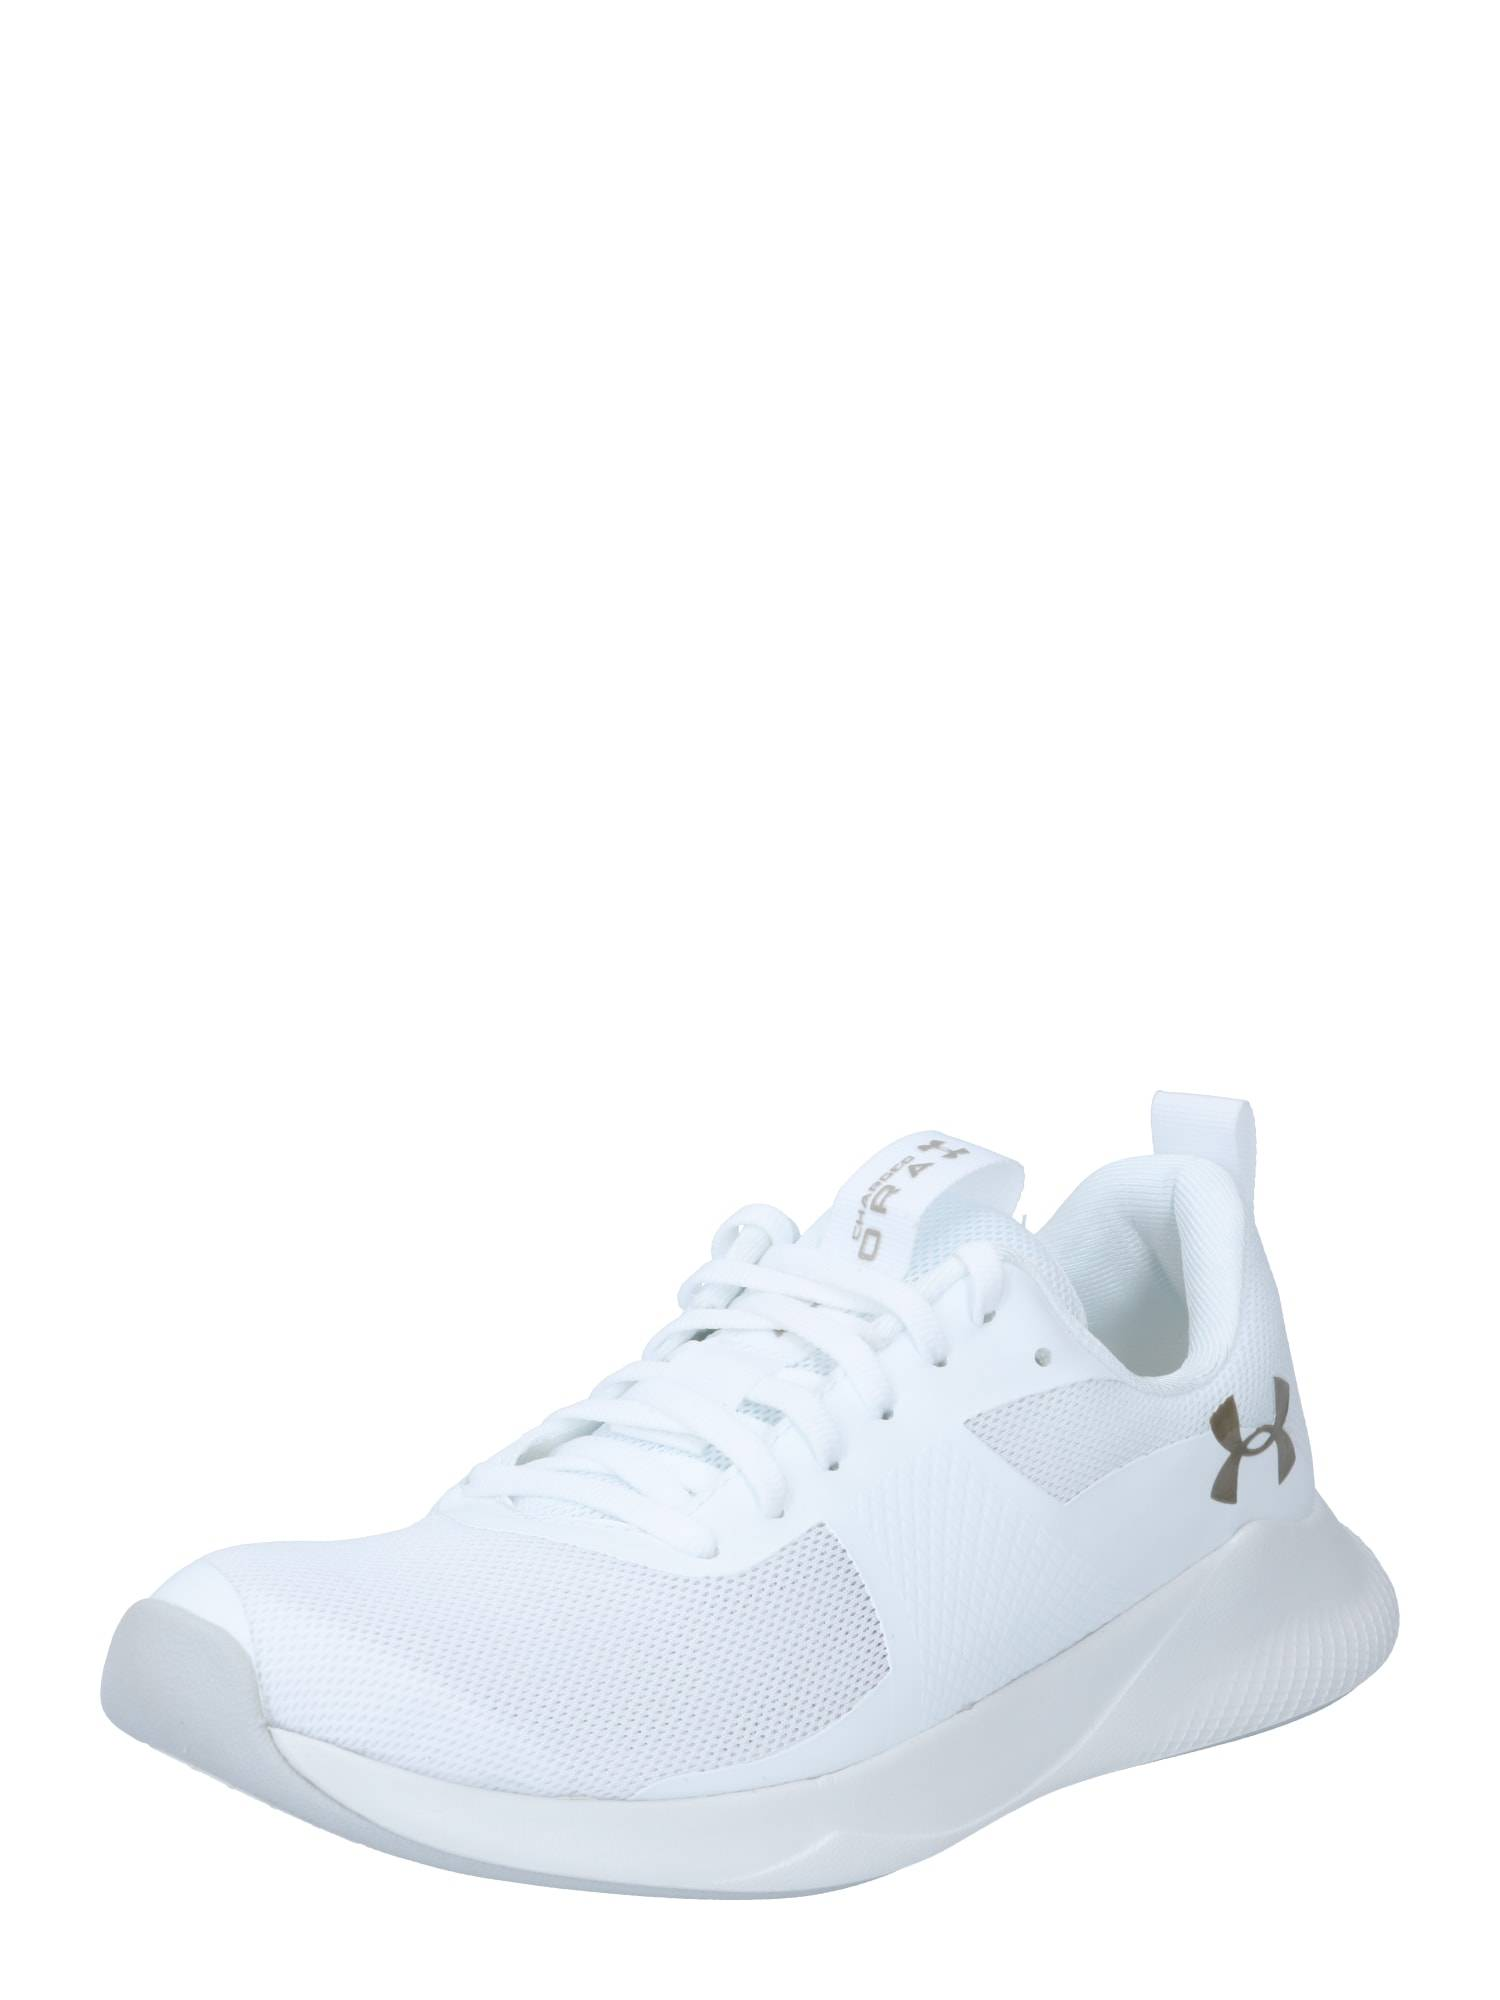 UNDER ARMOUR Chaussure de sport 'UA W Charged Aurora'  - Blanc - Taille: 5.5 - female